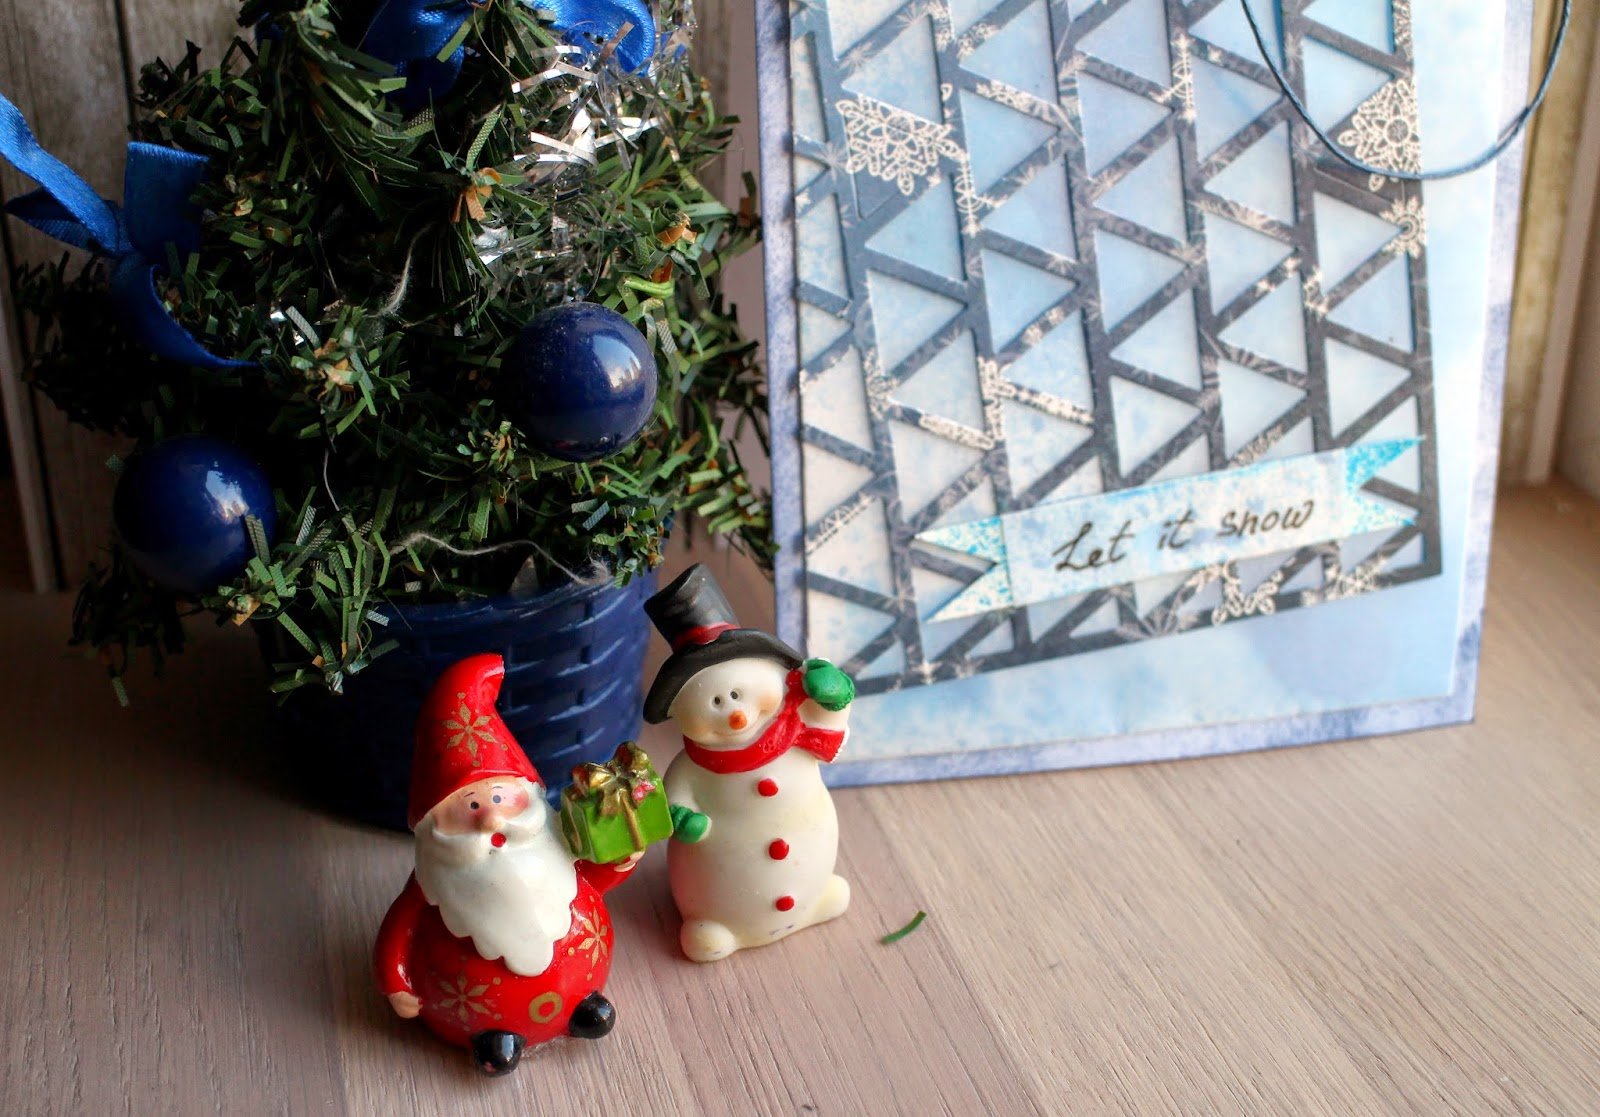 scrapbooking cas clean and simple card pti papertreyink blue winter let it snow скрапбукинг чисто и просто открытка зима снег hamster-sensey